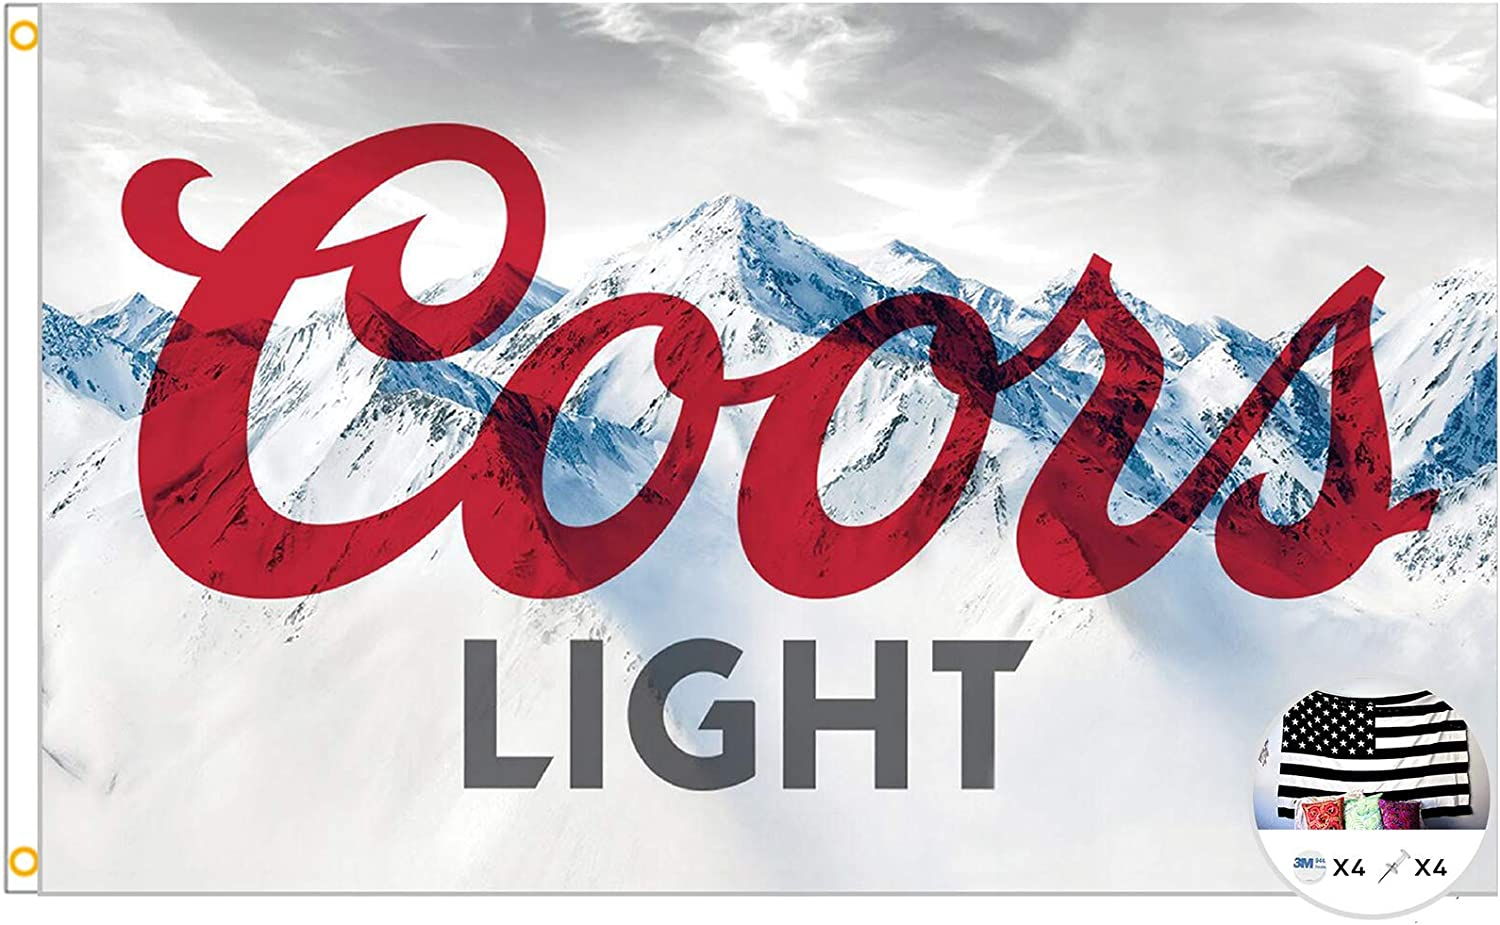 Coors Light Flag Cool Beer Flags,3x5 Feet Banner,Funny Poster UV Resistance Fading & Durable Man Cave Wall Flag with Brass Grommets for College Dorm Room Decor,Outdoor,Parties,Gift,Tailgates